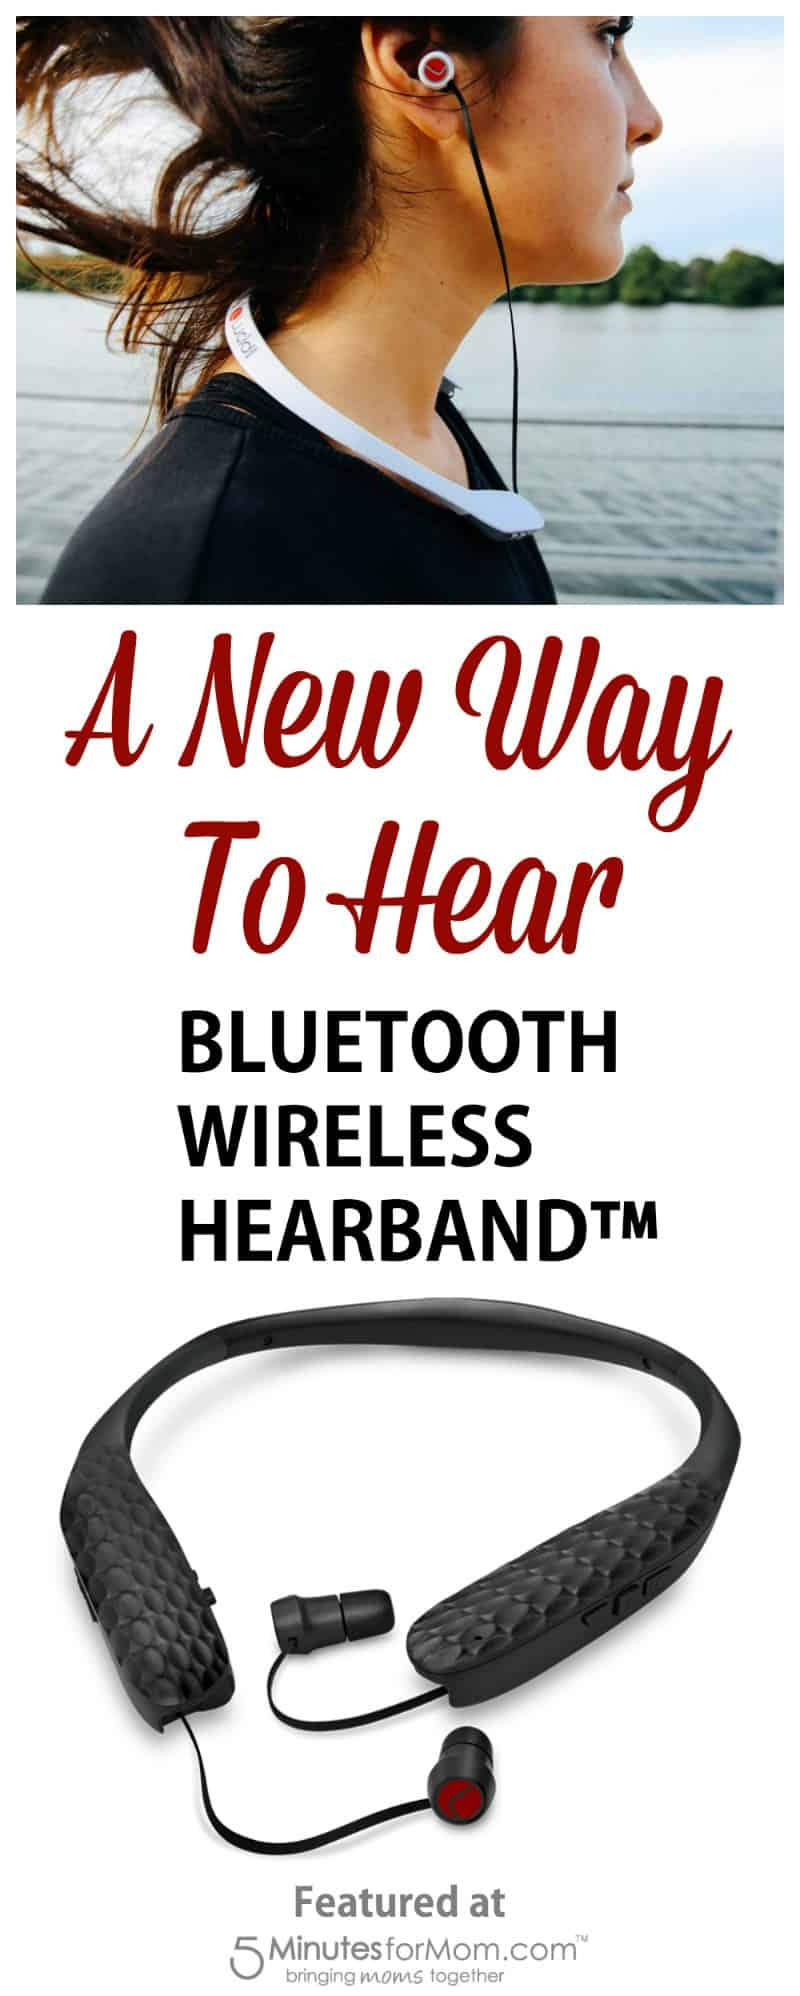 A New Way To Hear - Bluetooth Wireless HearBand